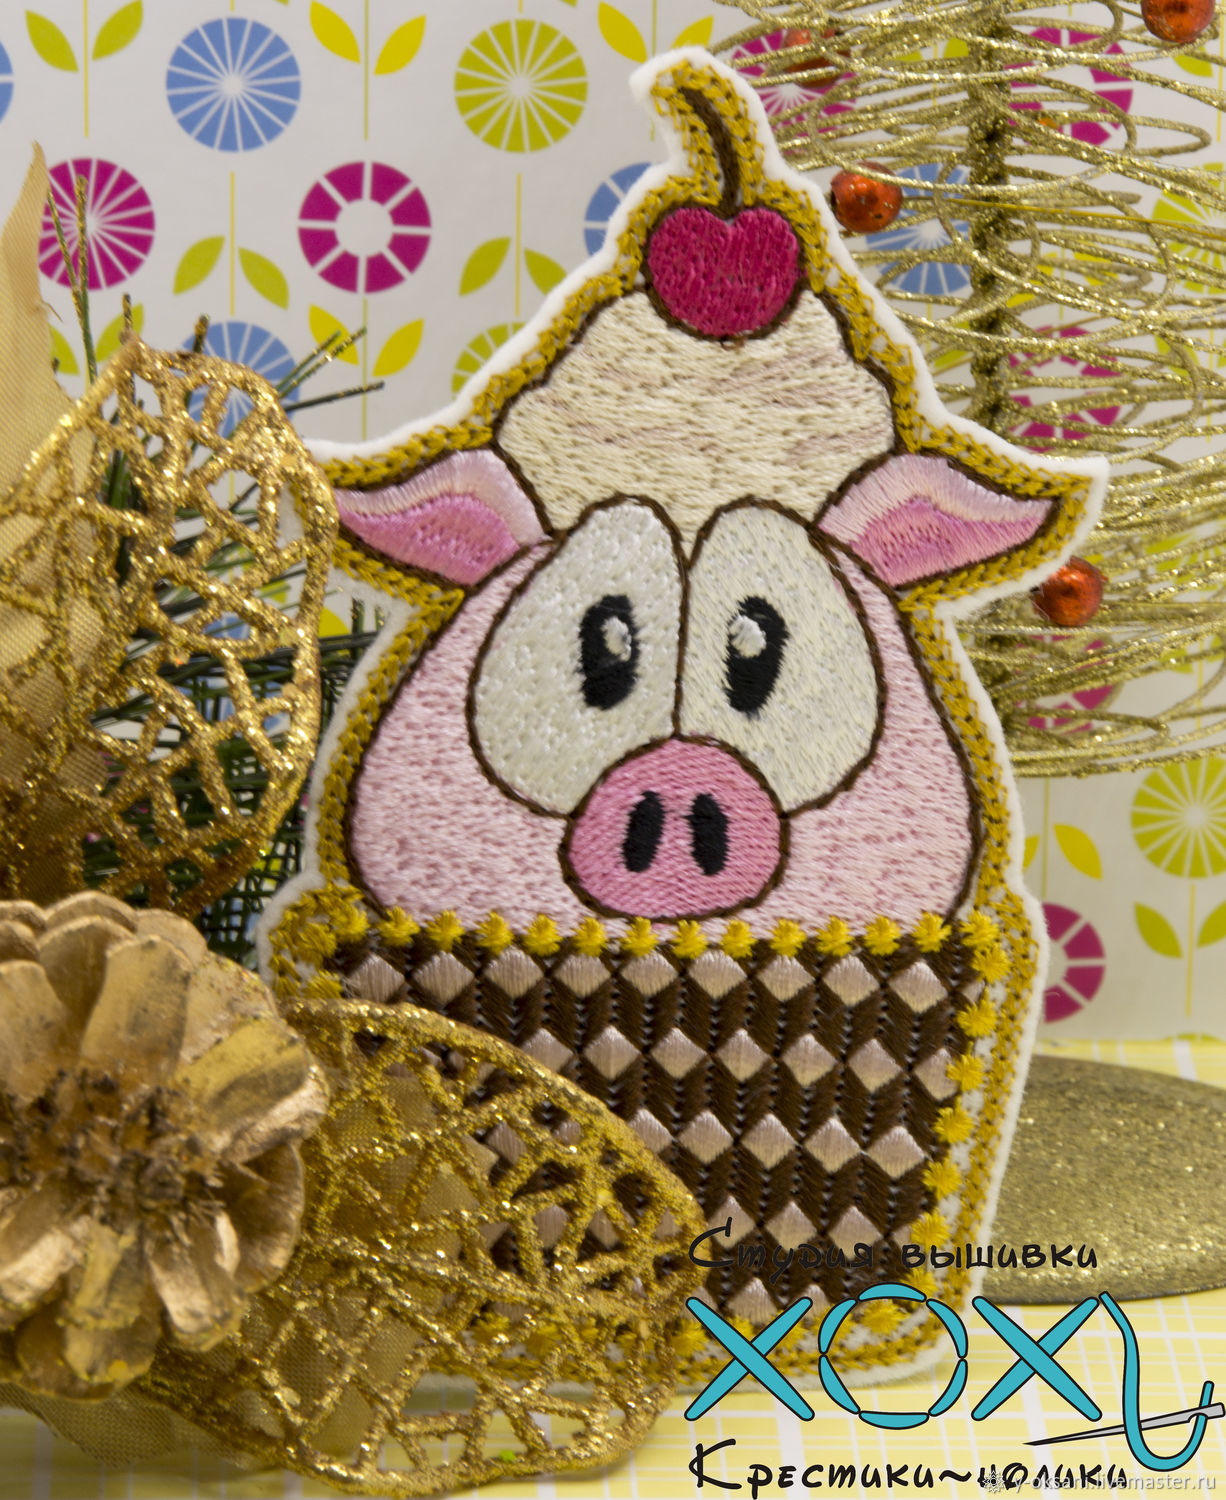 Needlework for the New Year of 2019 do it yourself